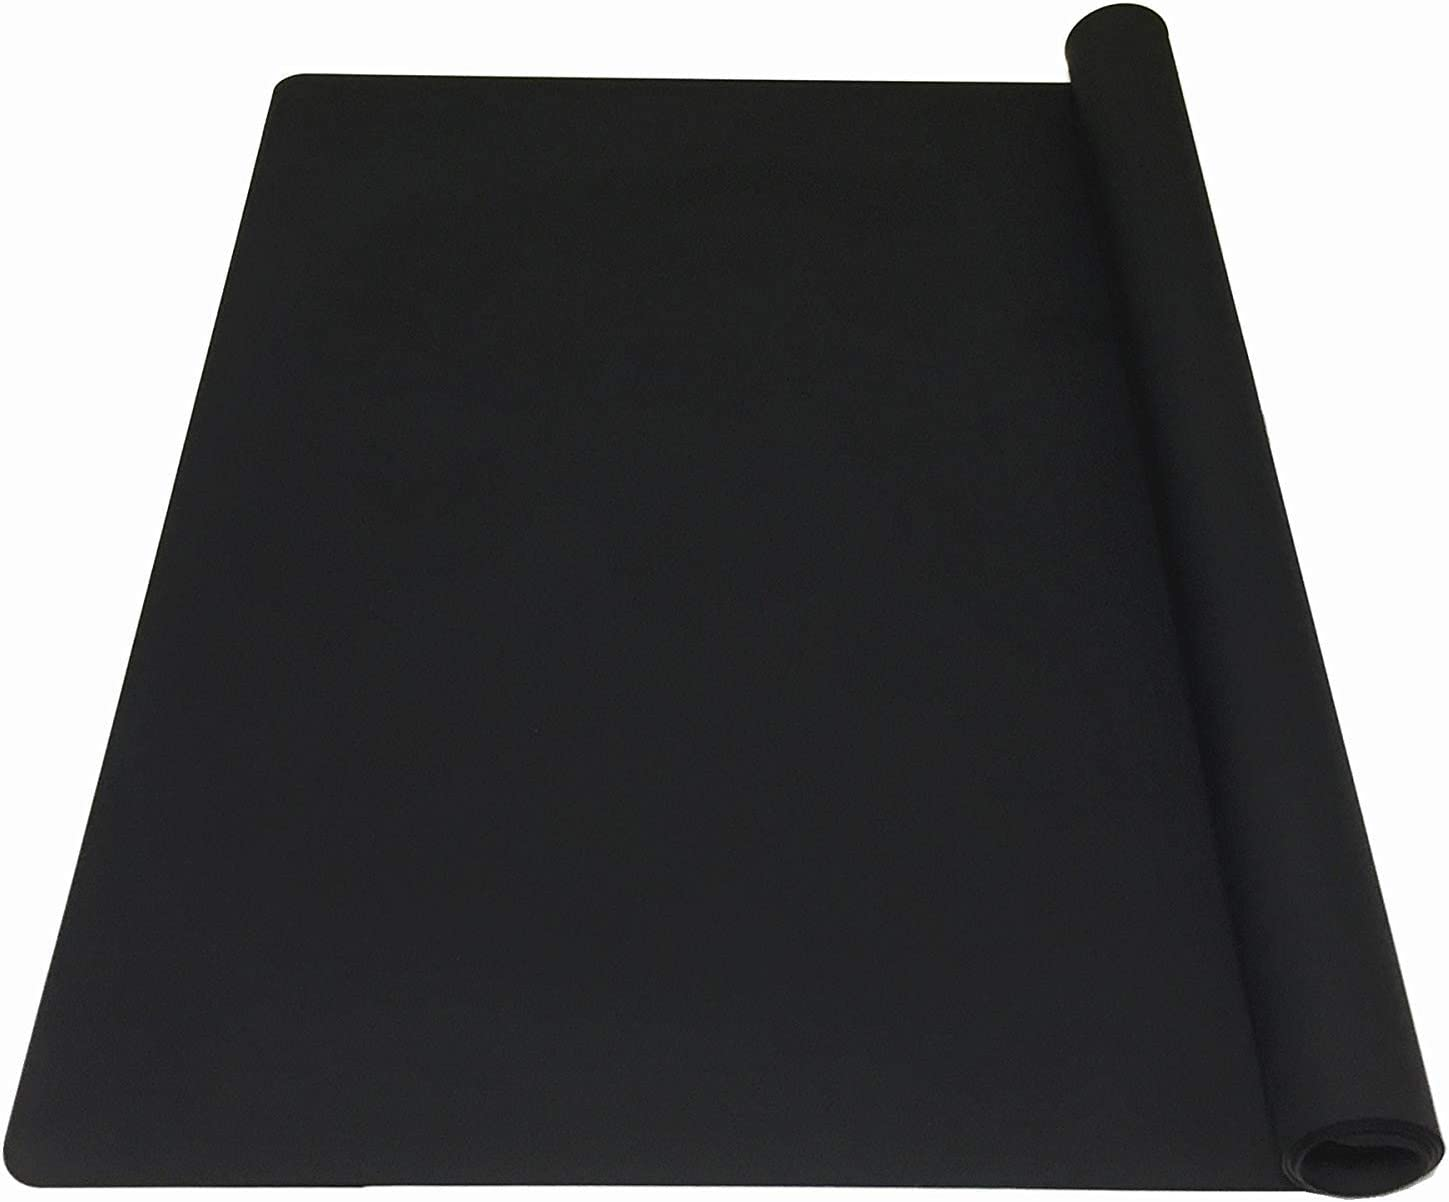 EPHome Extra Large Multipurpose Silicone Nonstick Pastry Mat, Heat Resistant Nonskid Table Mat, Countertop Protector, 23.6''15.75'' (XL, Black)